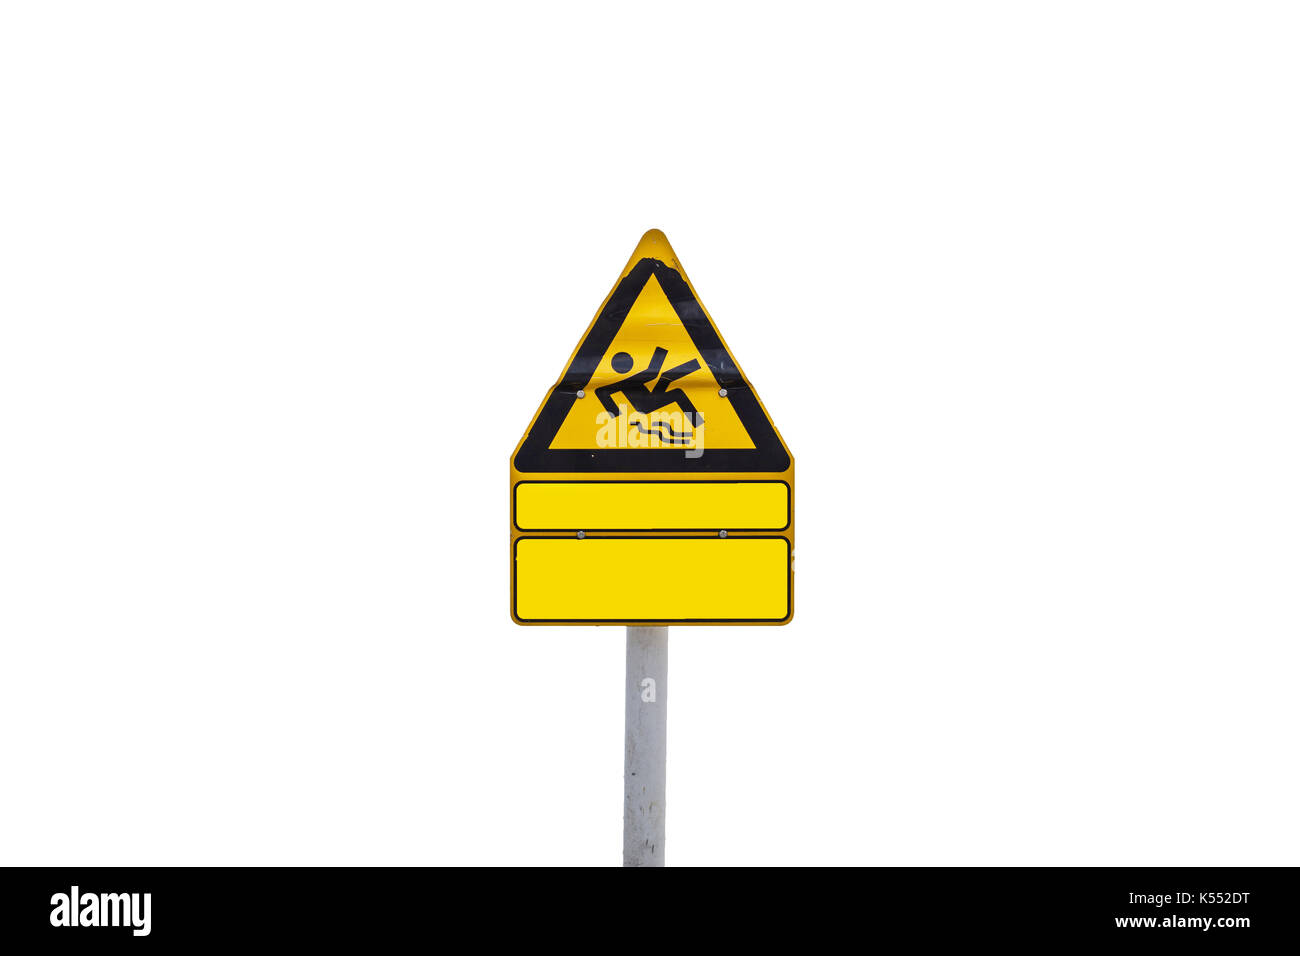 Yellow triangular Information sign, warning sign skydiver. Stock Photo